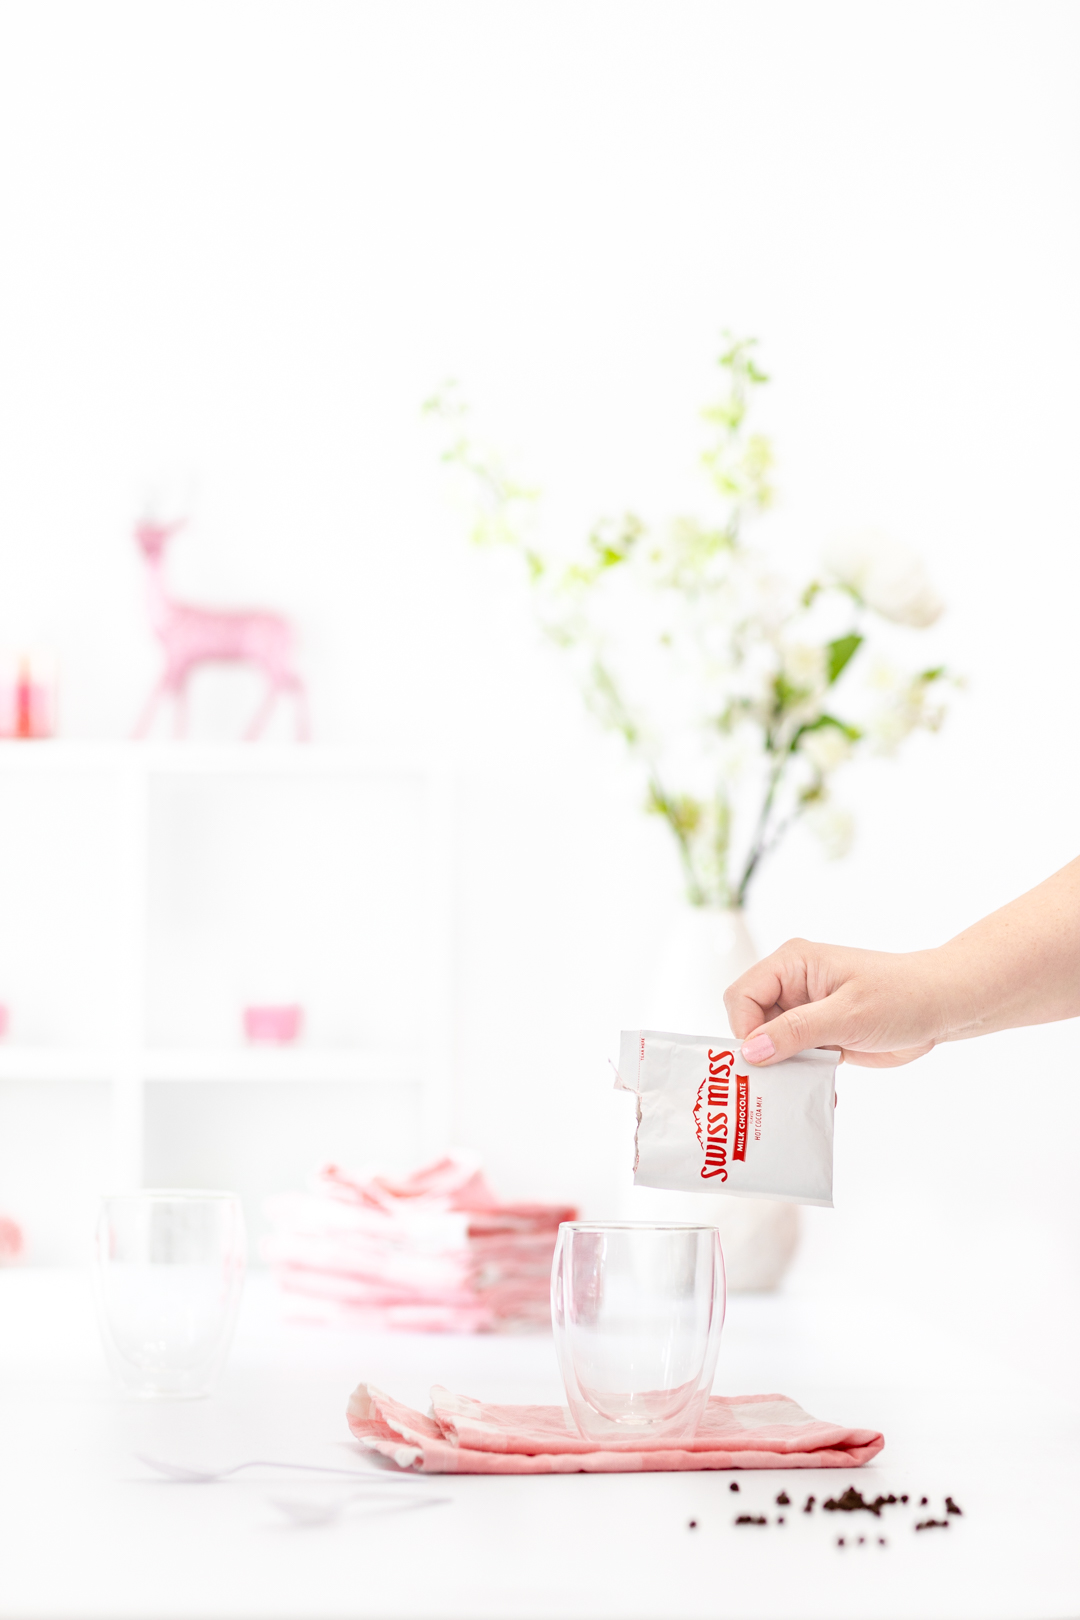 Pouring a packet of Swiss Miss into a mug.